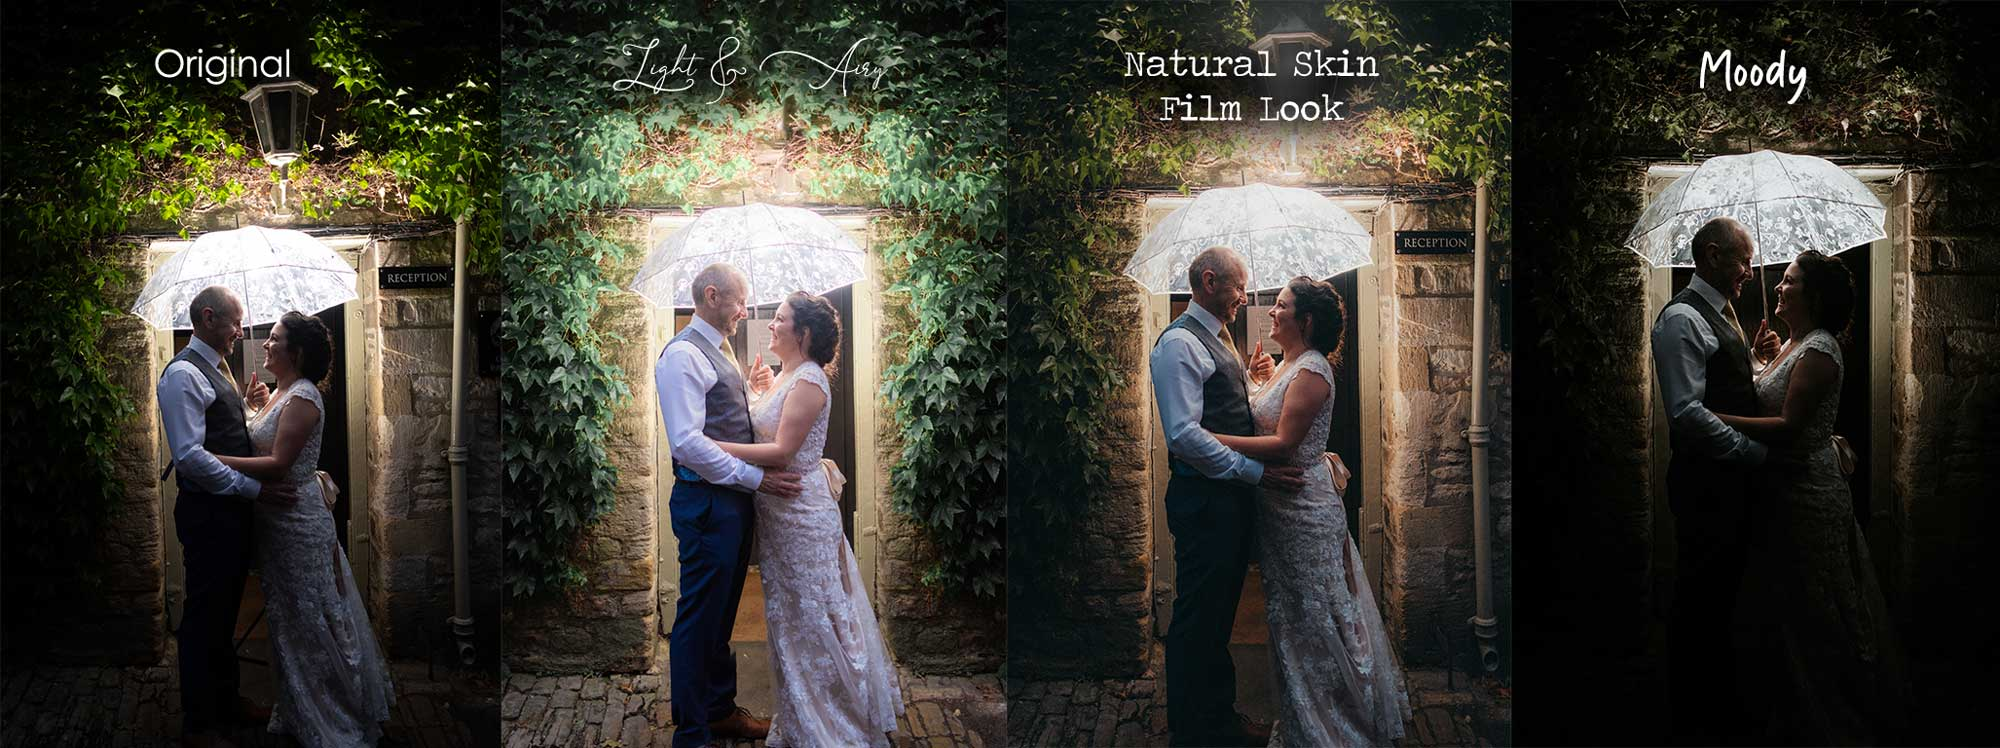 simple explanation of different wedding photography styles